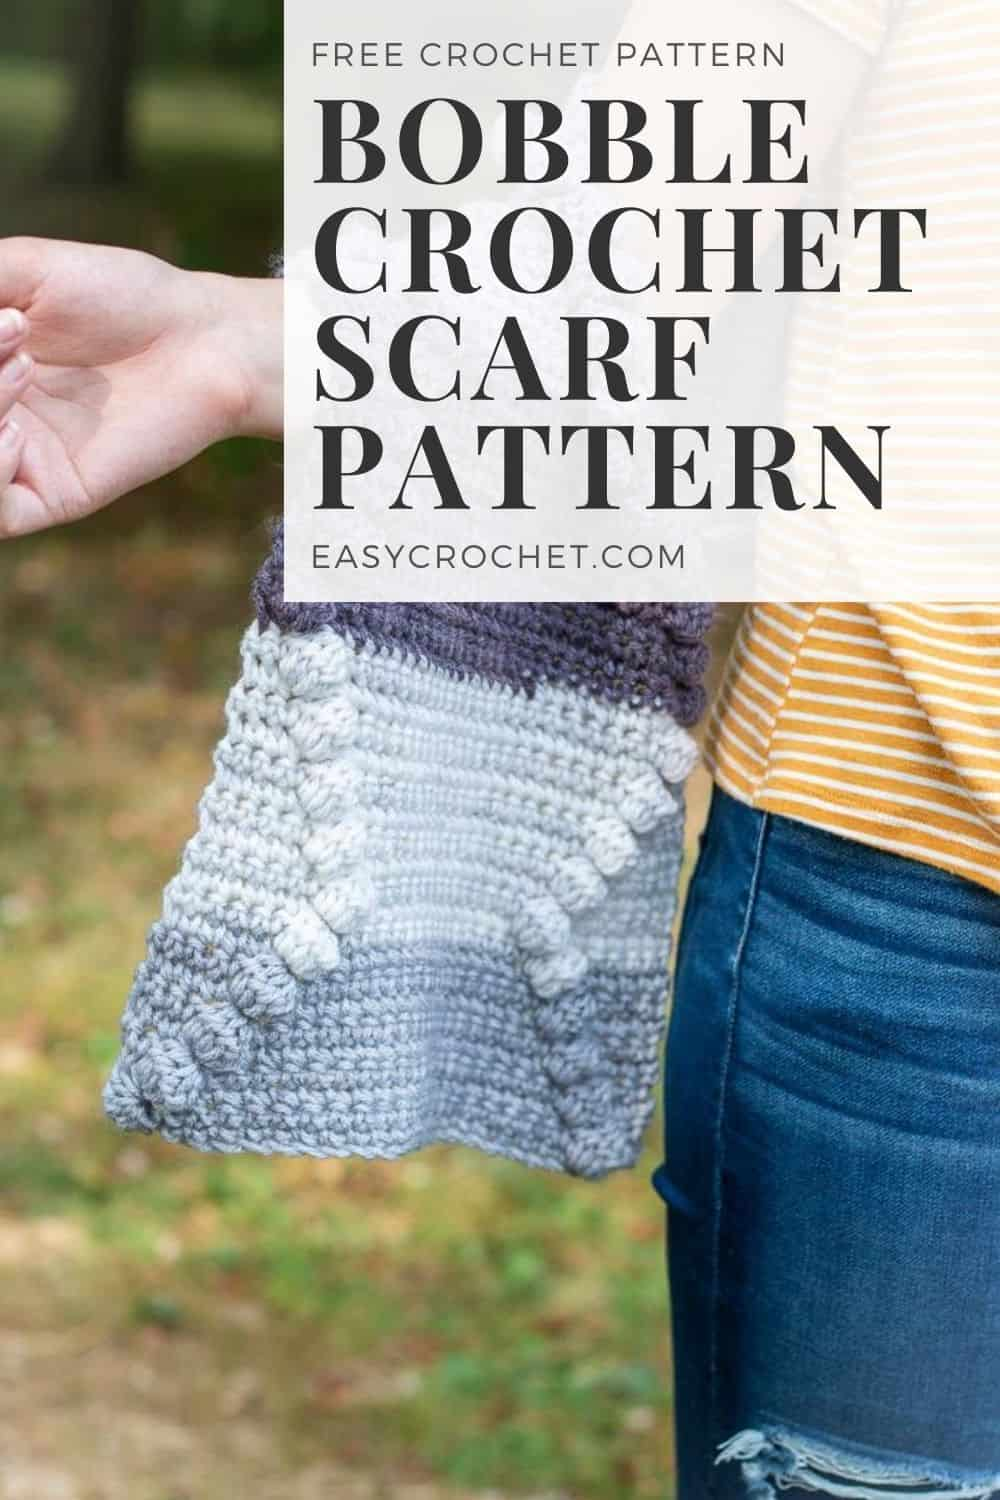 Bobble Scarf Crochet Pattern - Learn how to make this simple crochet scarf with the free pattern from easycrochet.com via @easycrochetcom